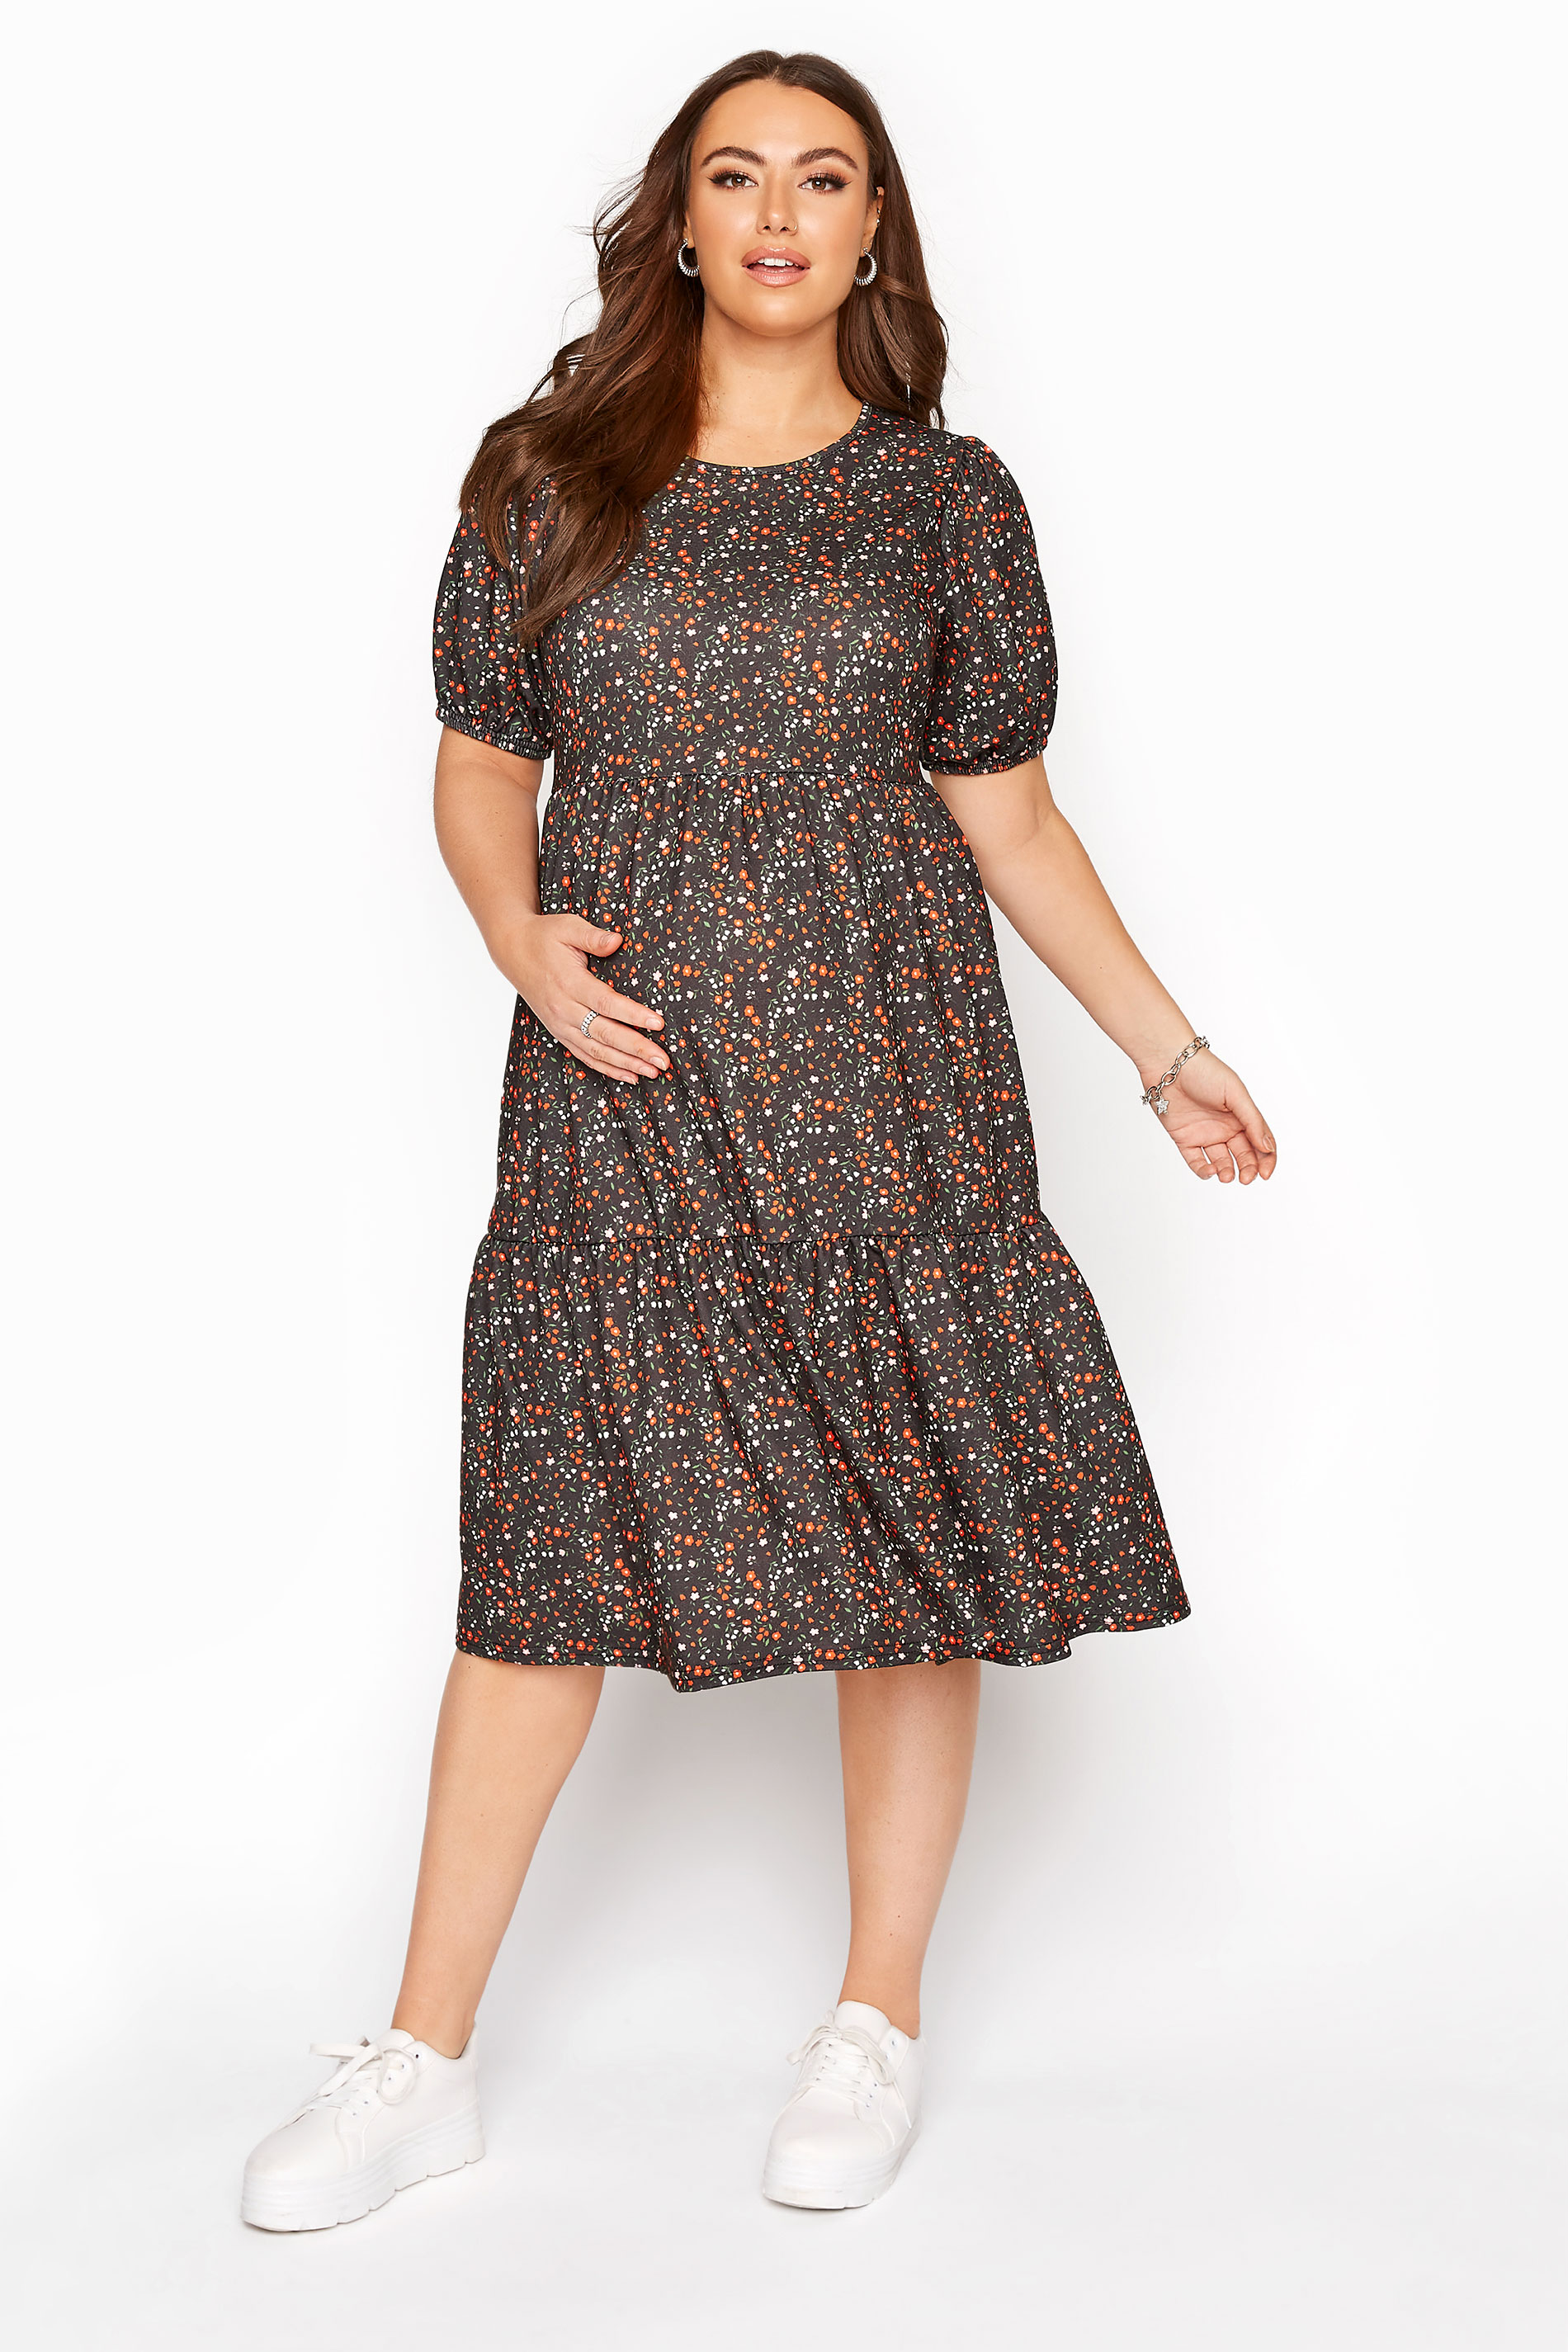 BUMP IT UP MATERNITY Black Floral Tiered Smock Dress